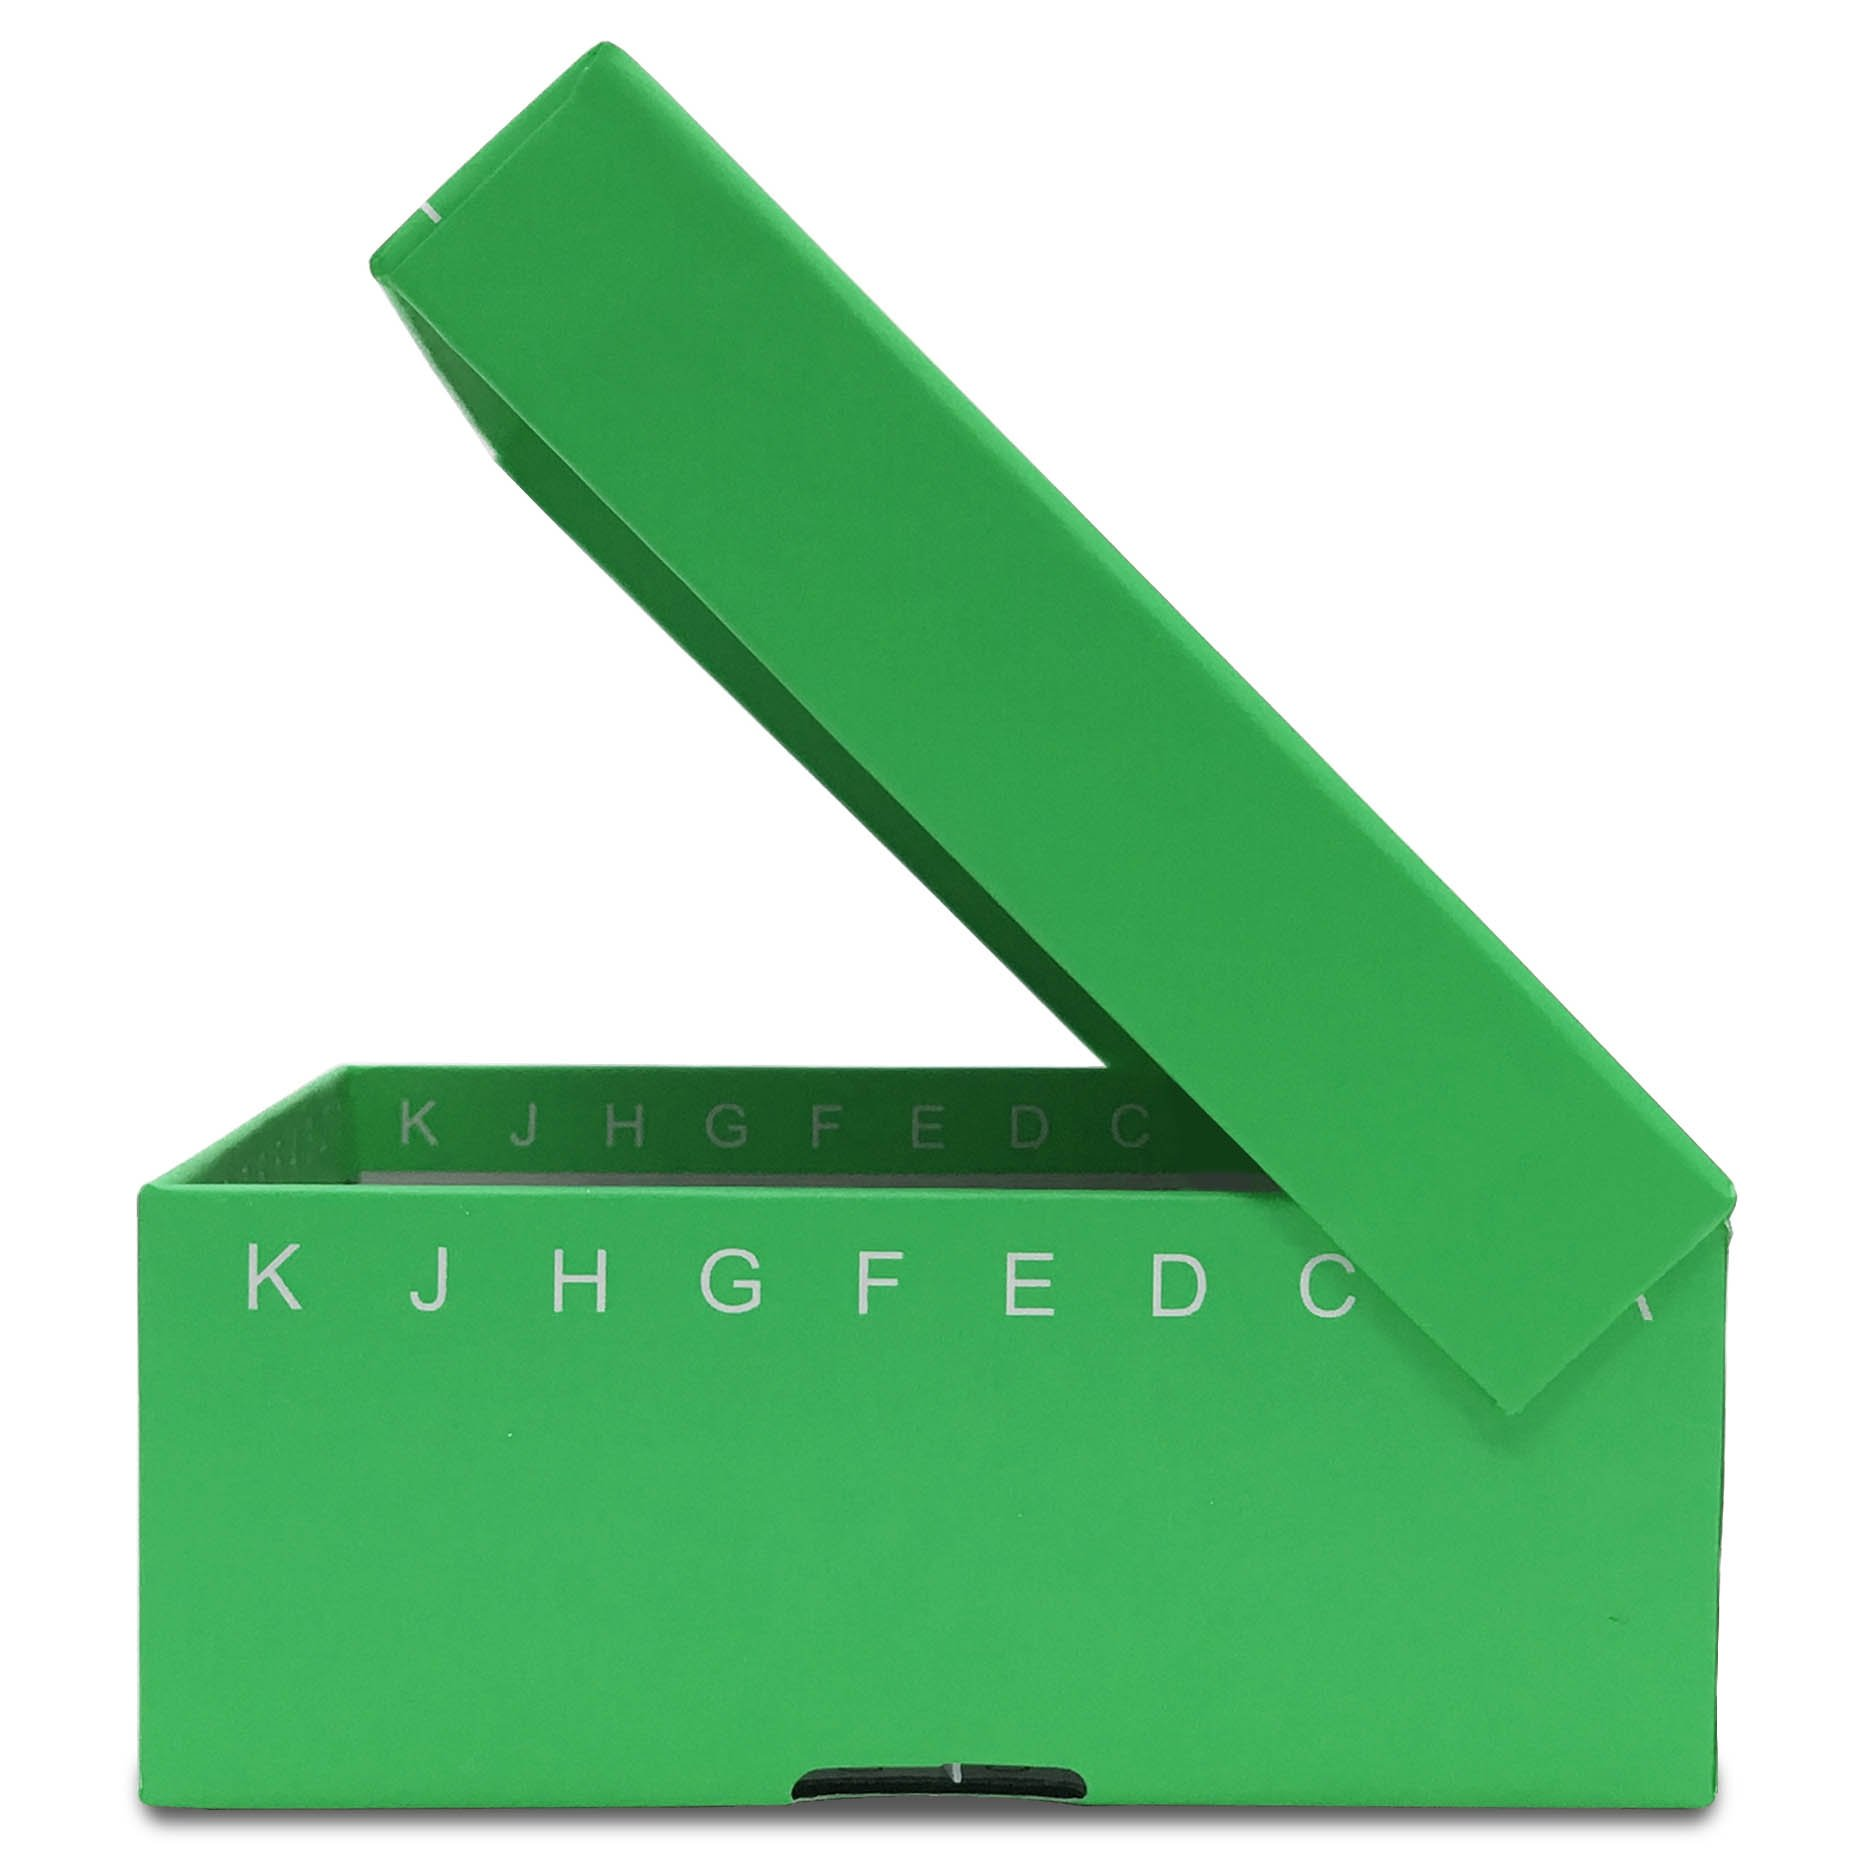 FlipTop Cardboard Freezer Box 100-Place with Attached Hinged Lid - Green (Case of 50)